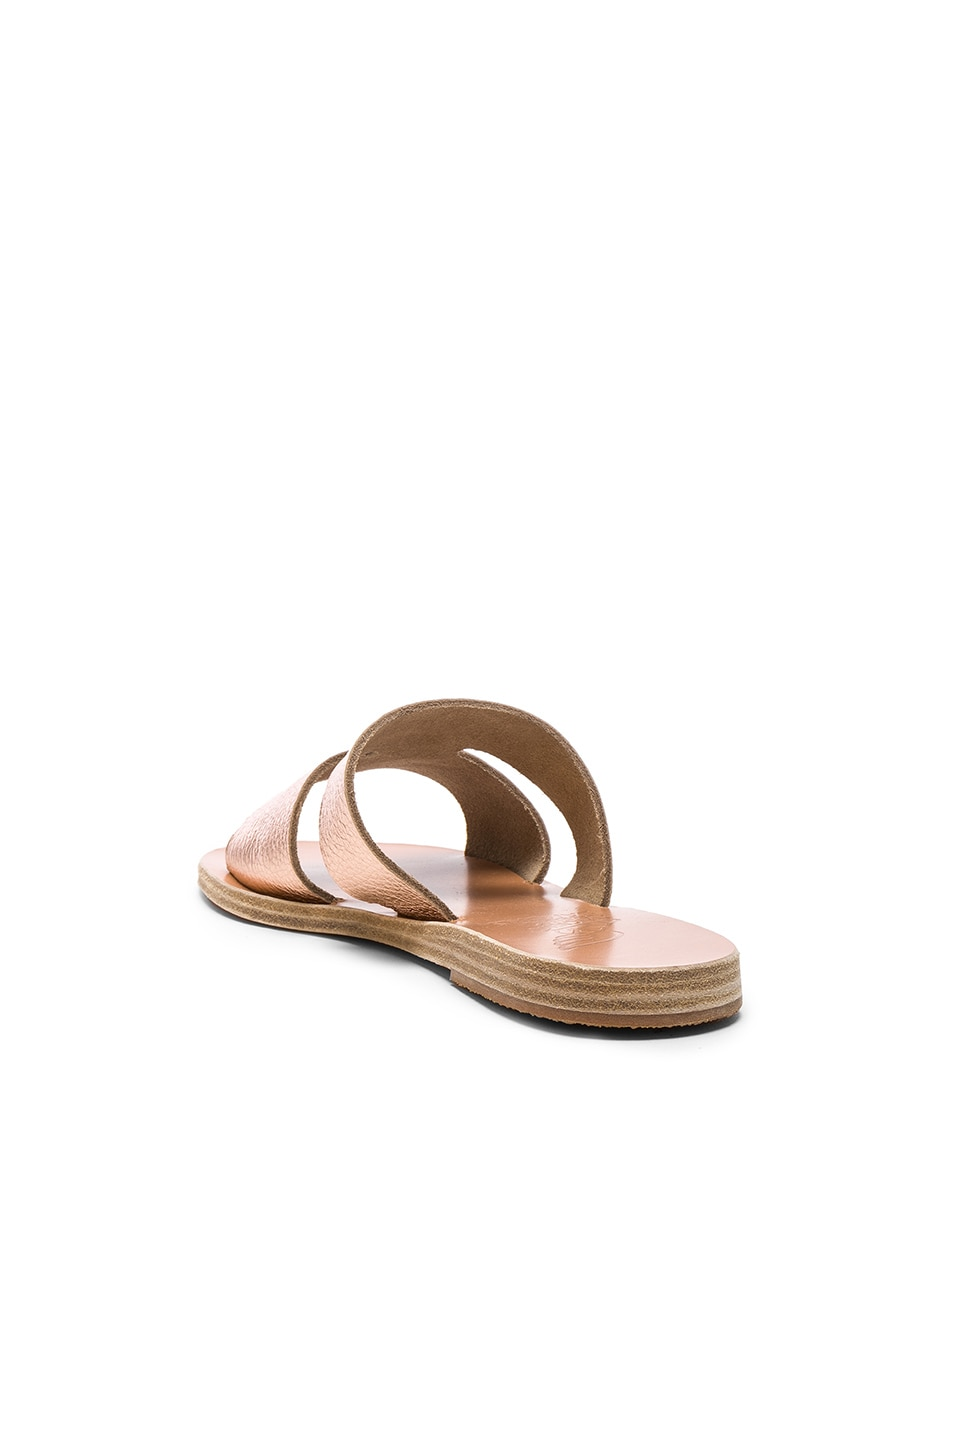 Image 3 of Ancient Greek Sandals Metallic Leather Apteros Sandals in Pink Metallic